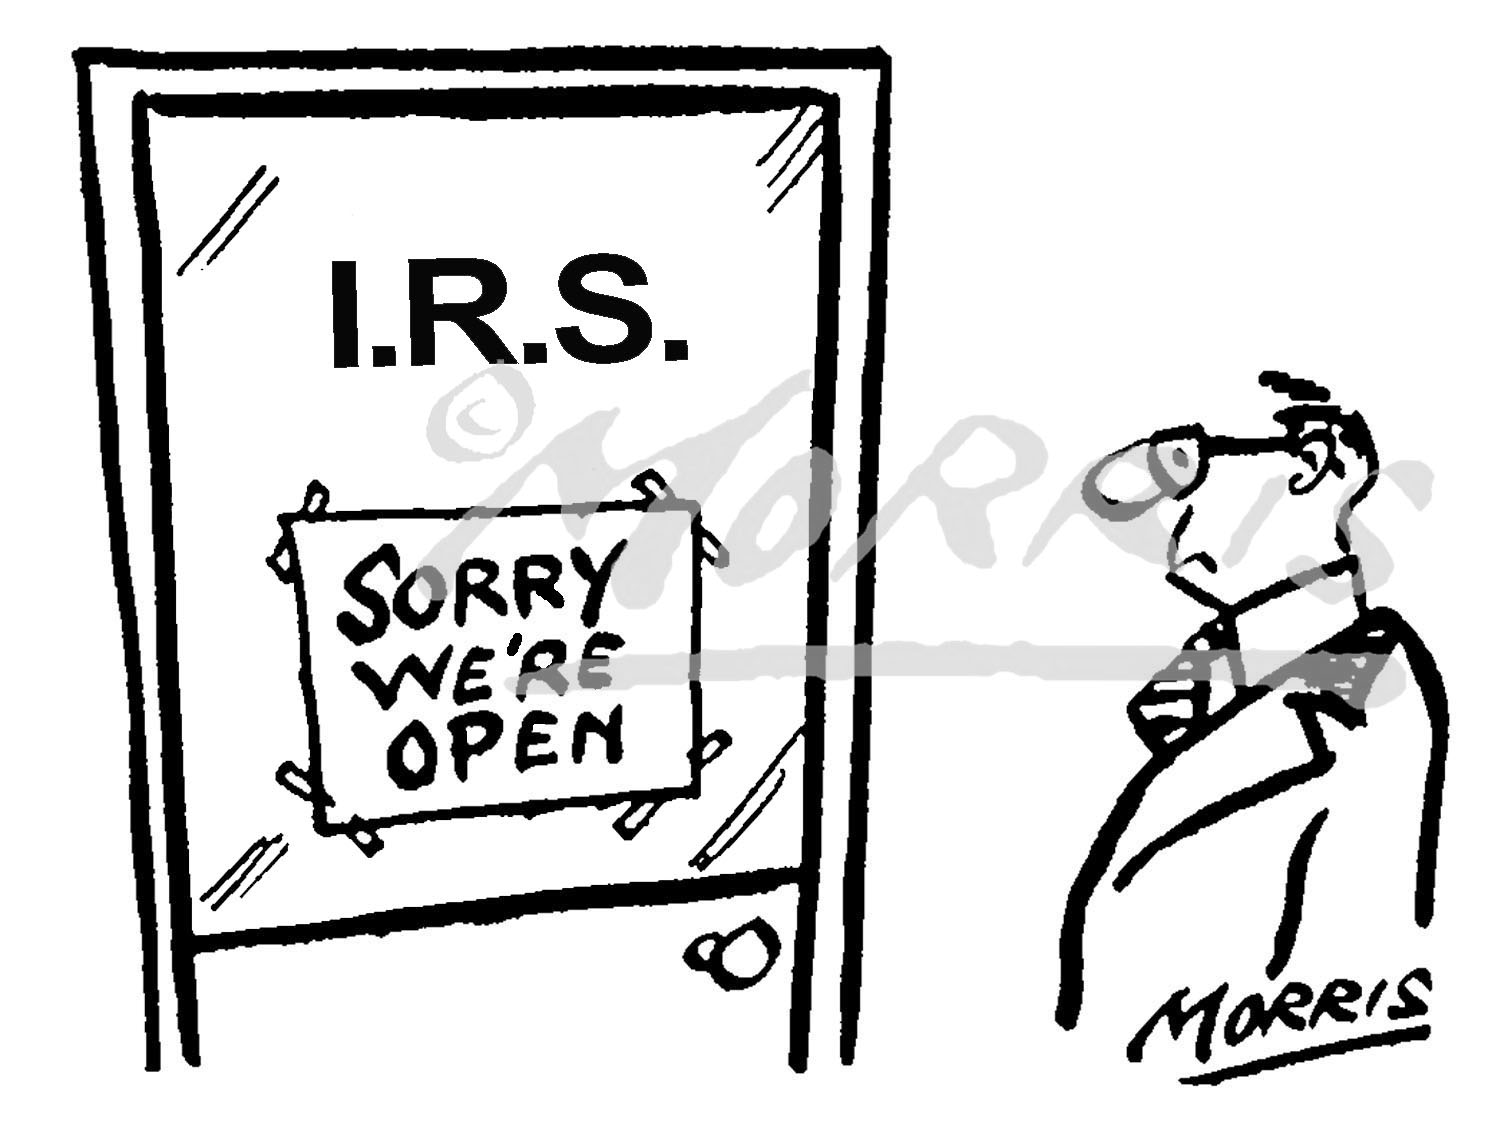 IRS taxation office comic cartoon – Ref: 0426bwus